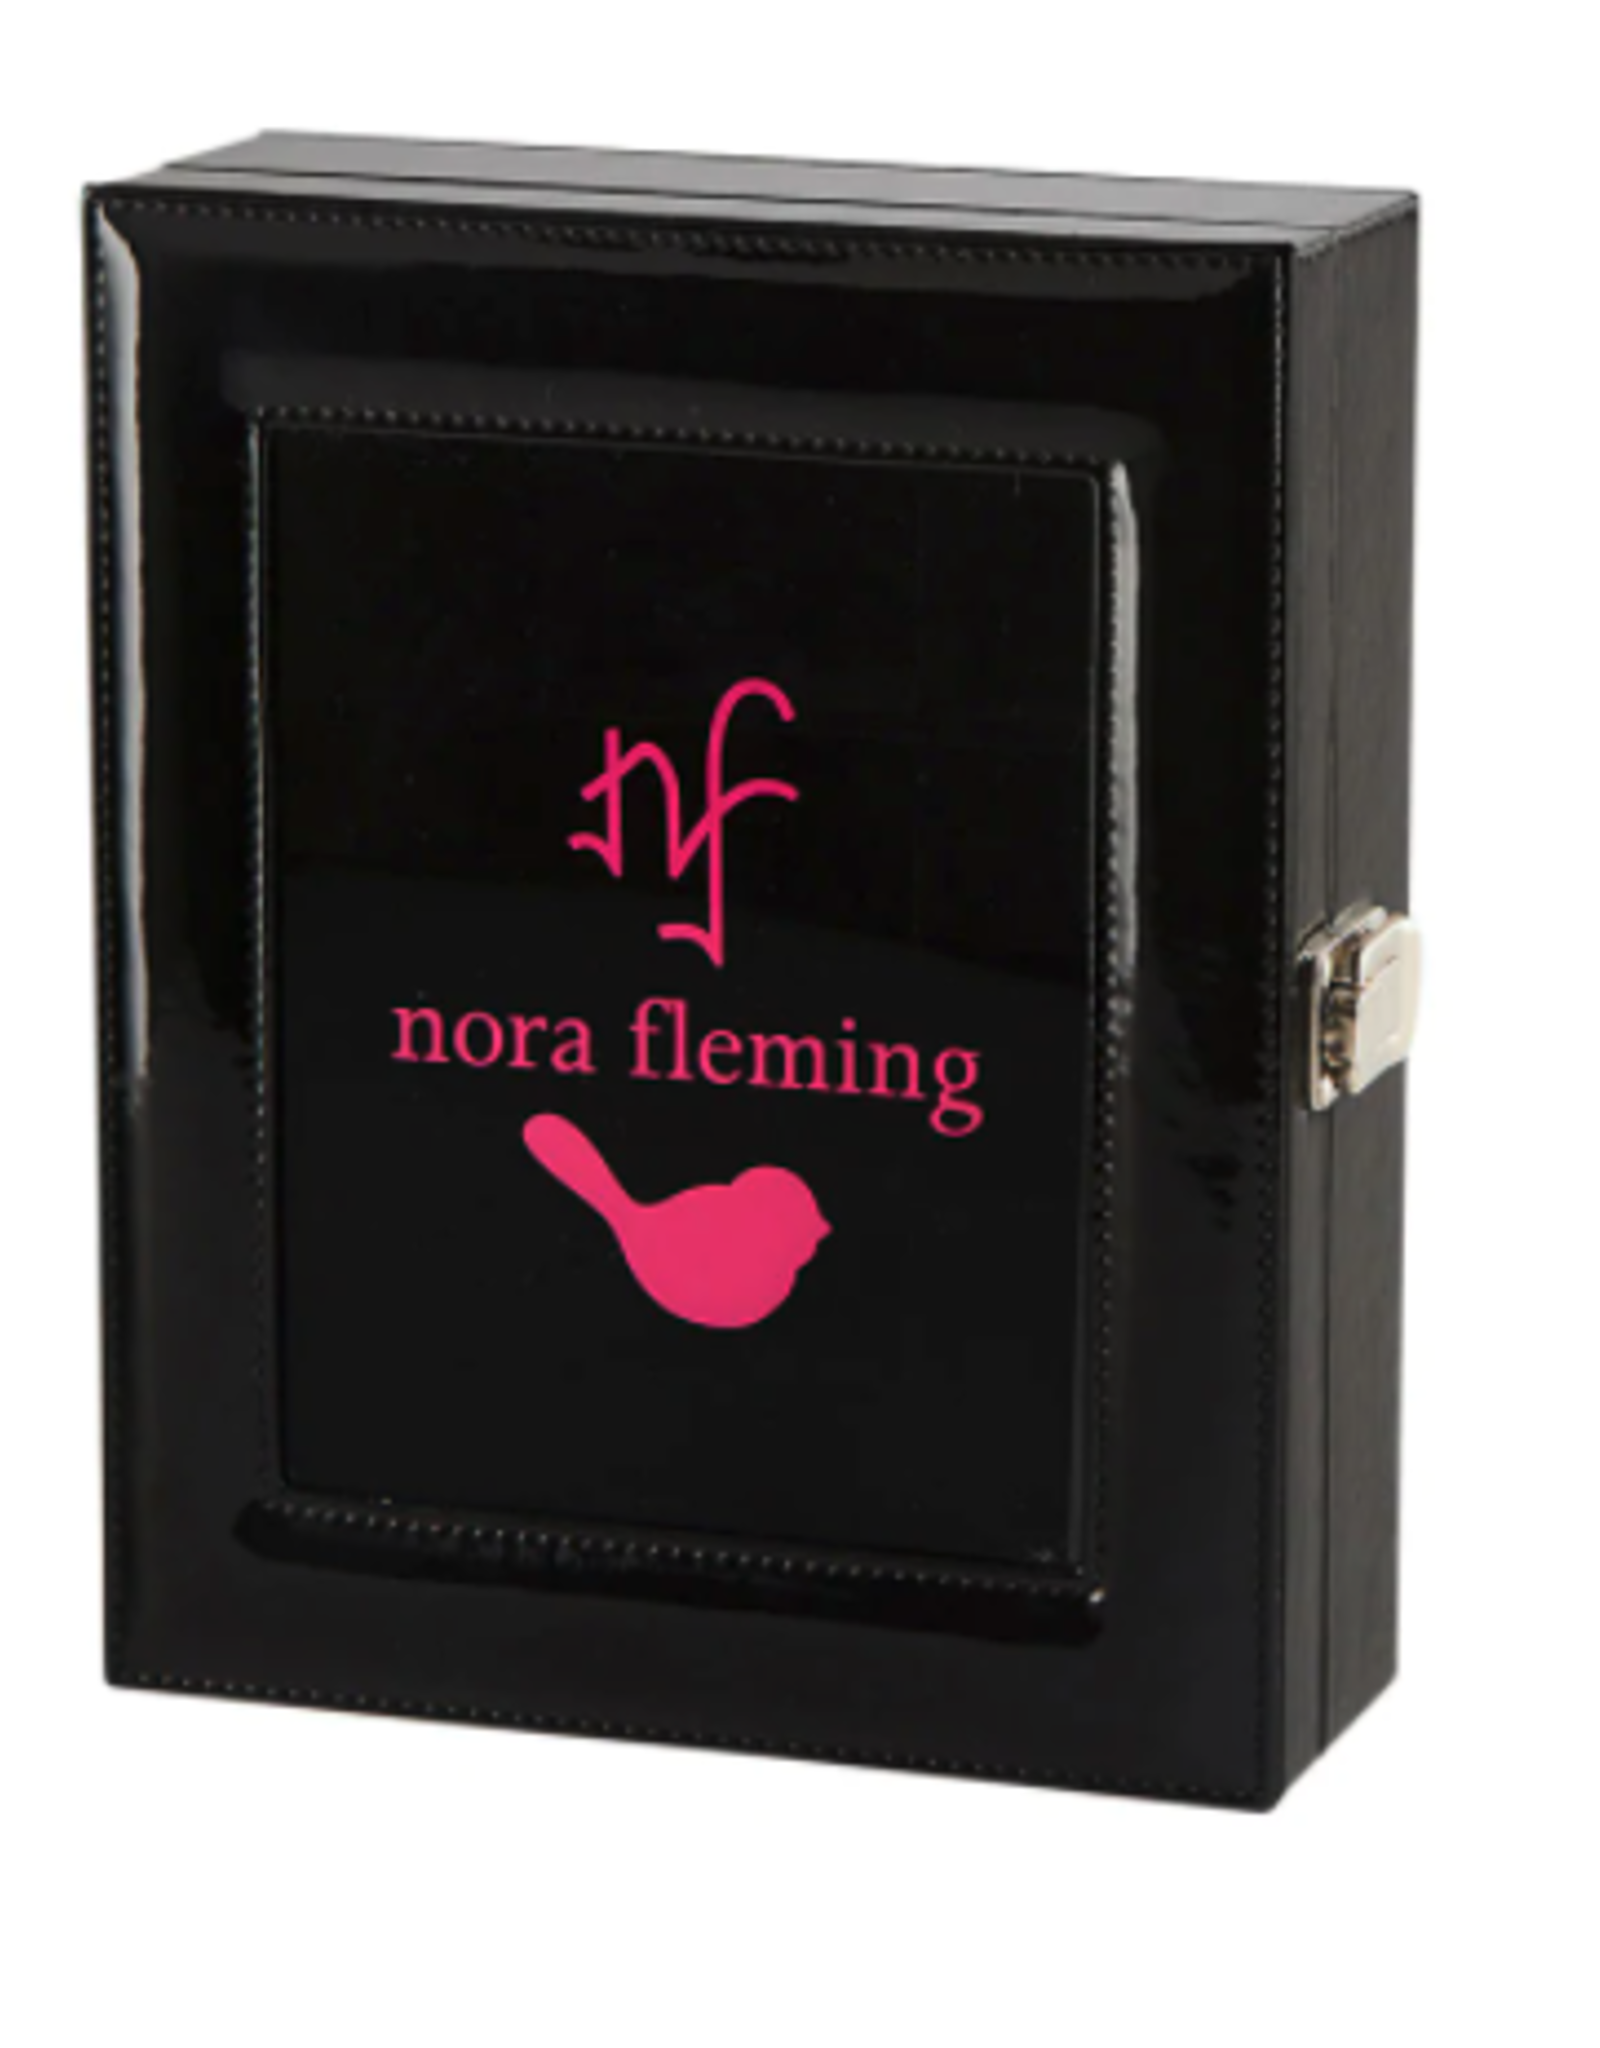 Nora Fleming Nora Fleming - 9 Piece Keepsake